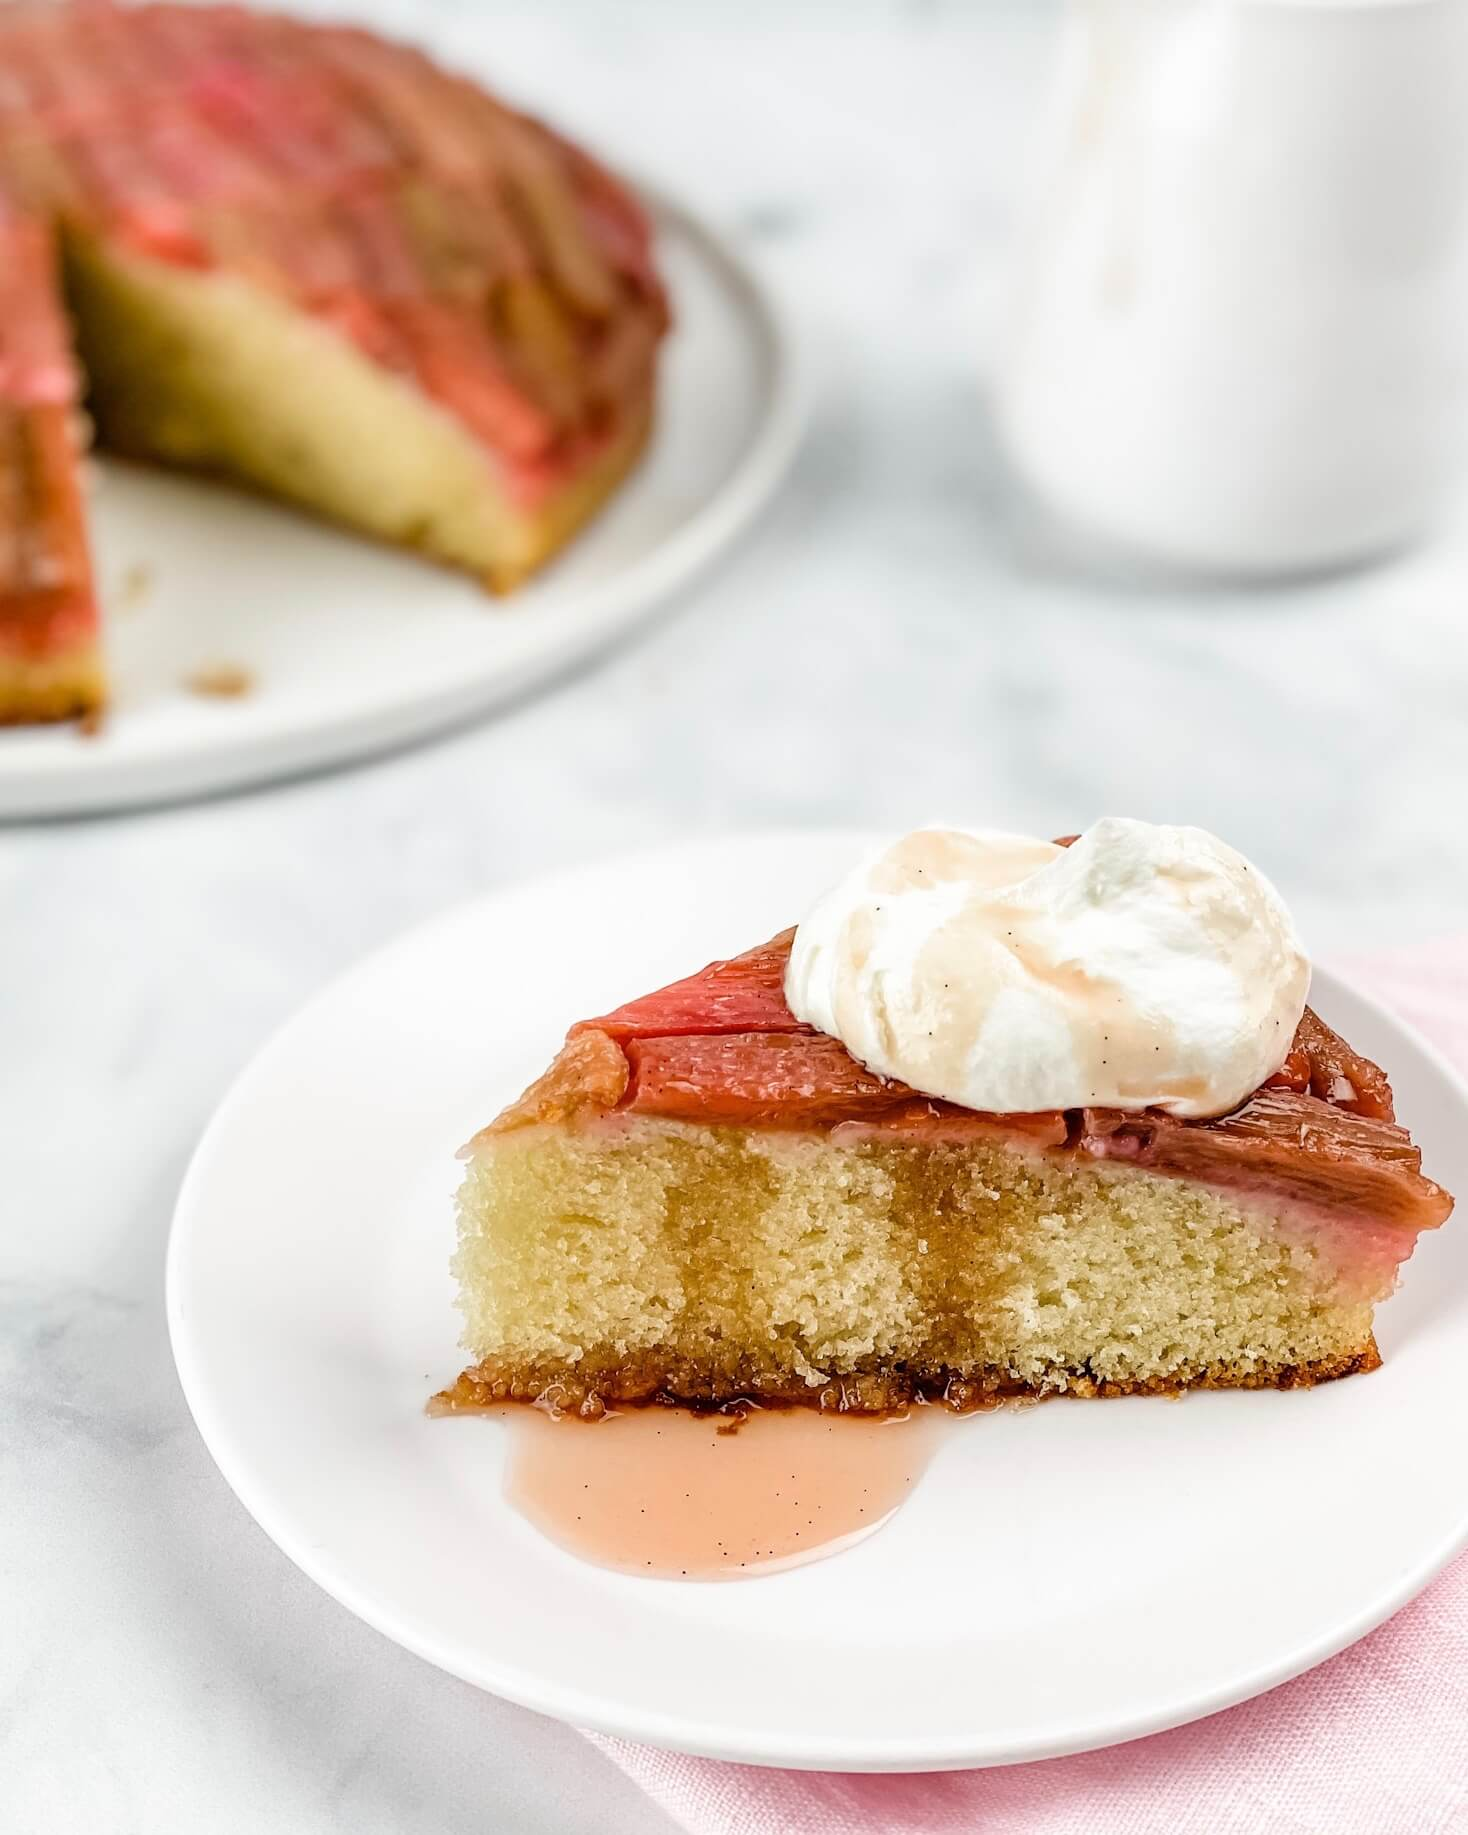 cake slice with rhubarb and whipped cream